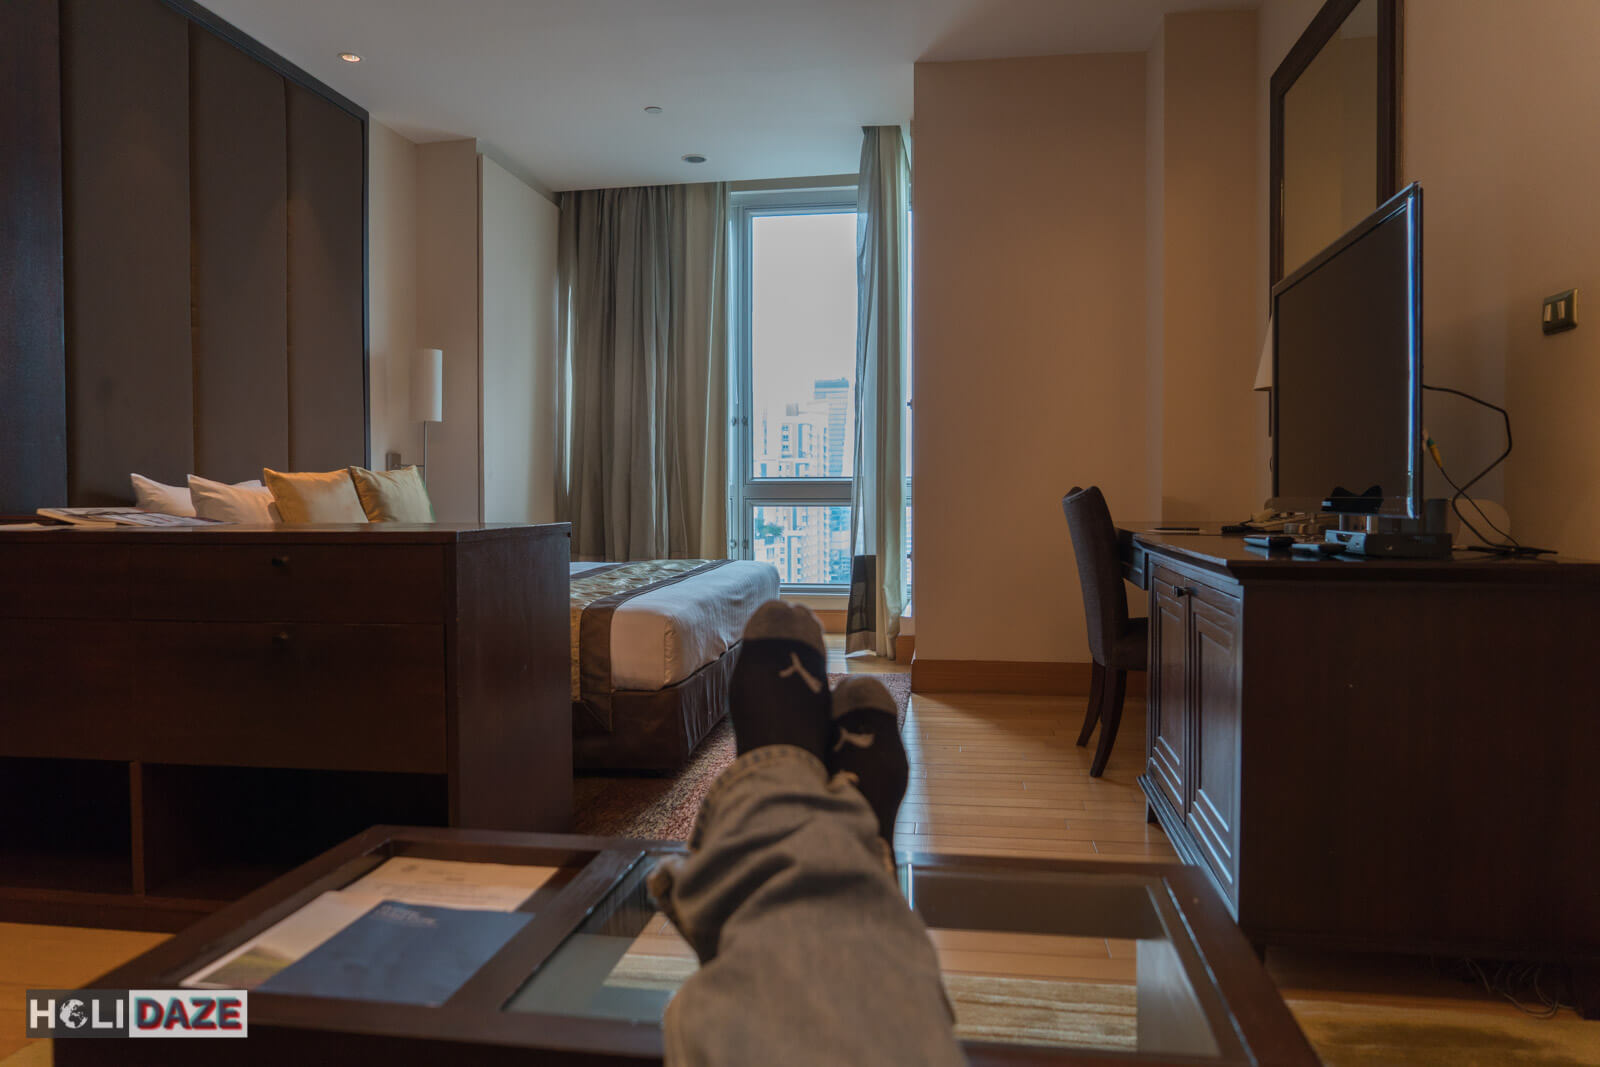 Relaxing in my suite at the Ascott Sathorn in Bangkok, Thailand